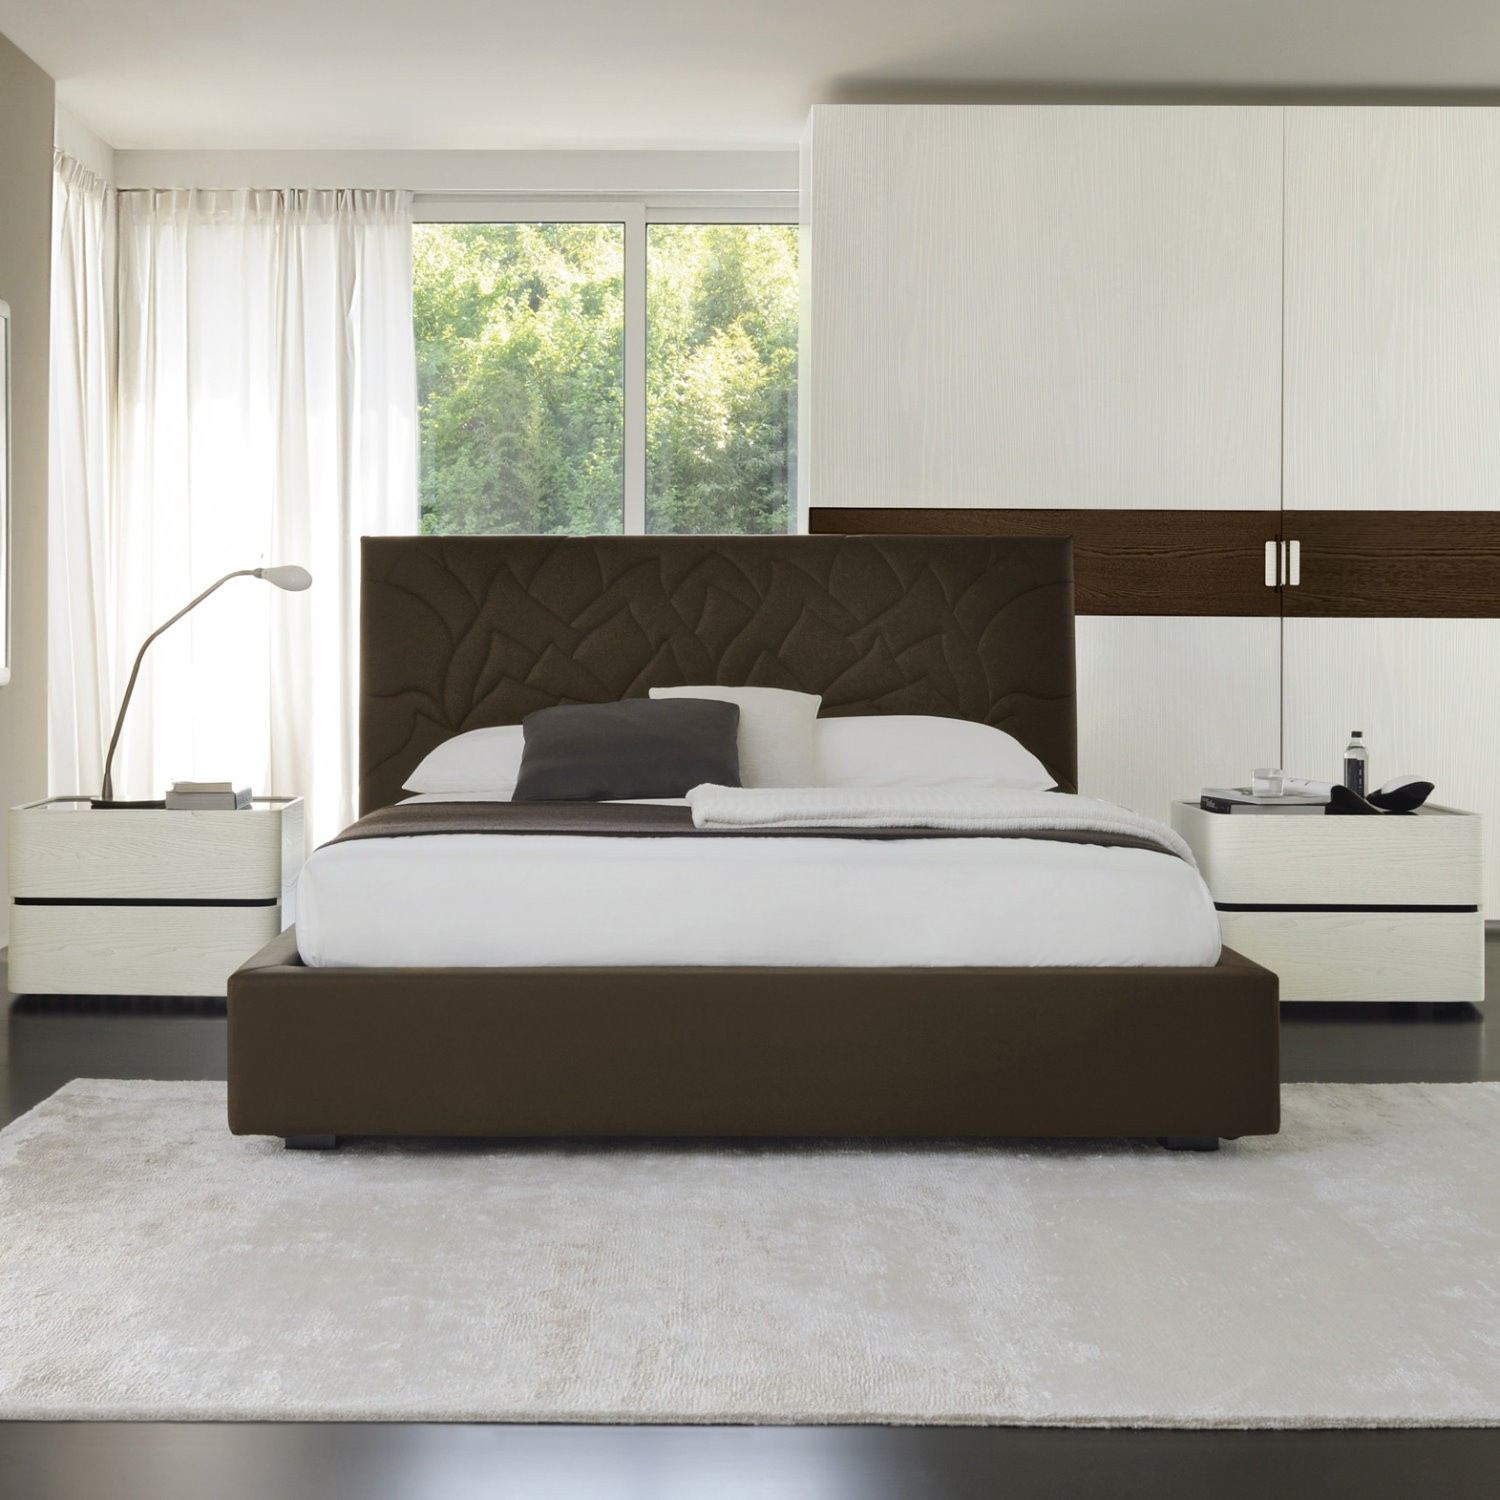 Camera Da Letto Giapponese | 6 Ways To Find Furniture For Your ...